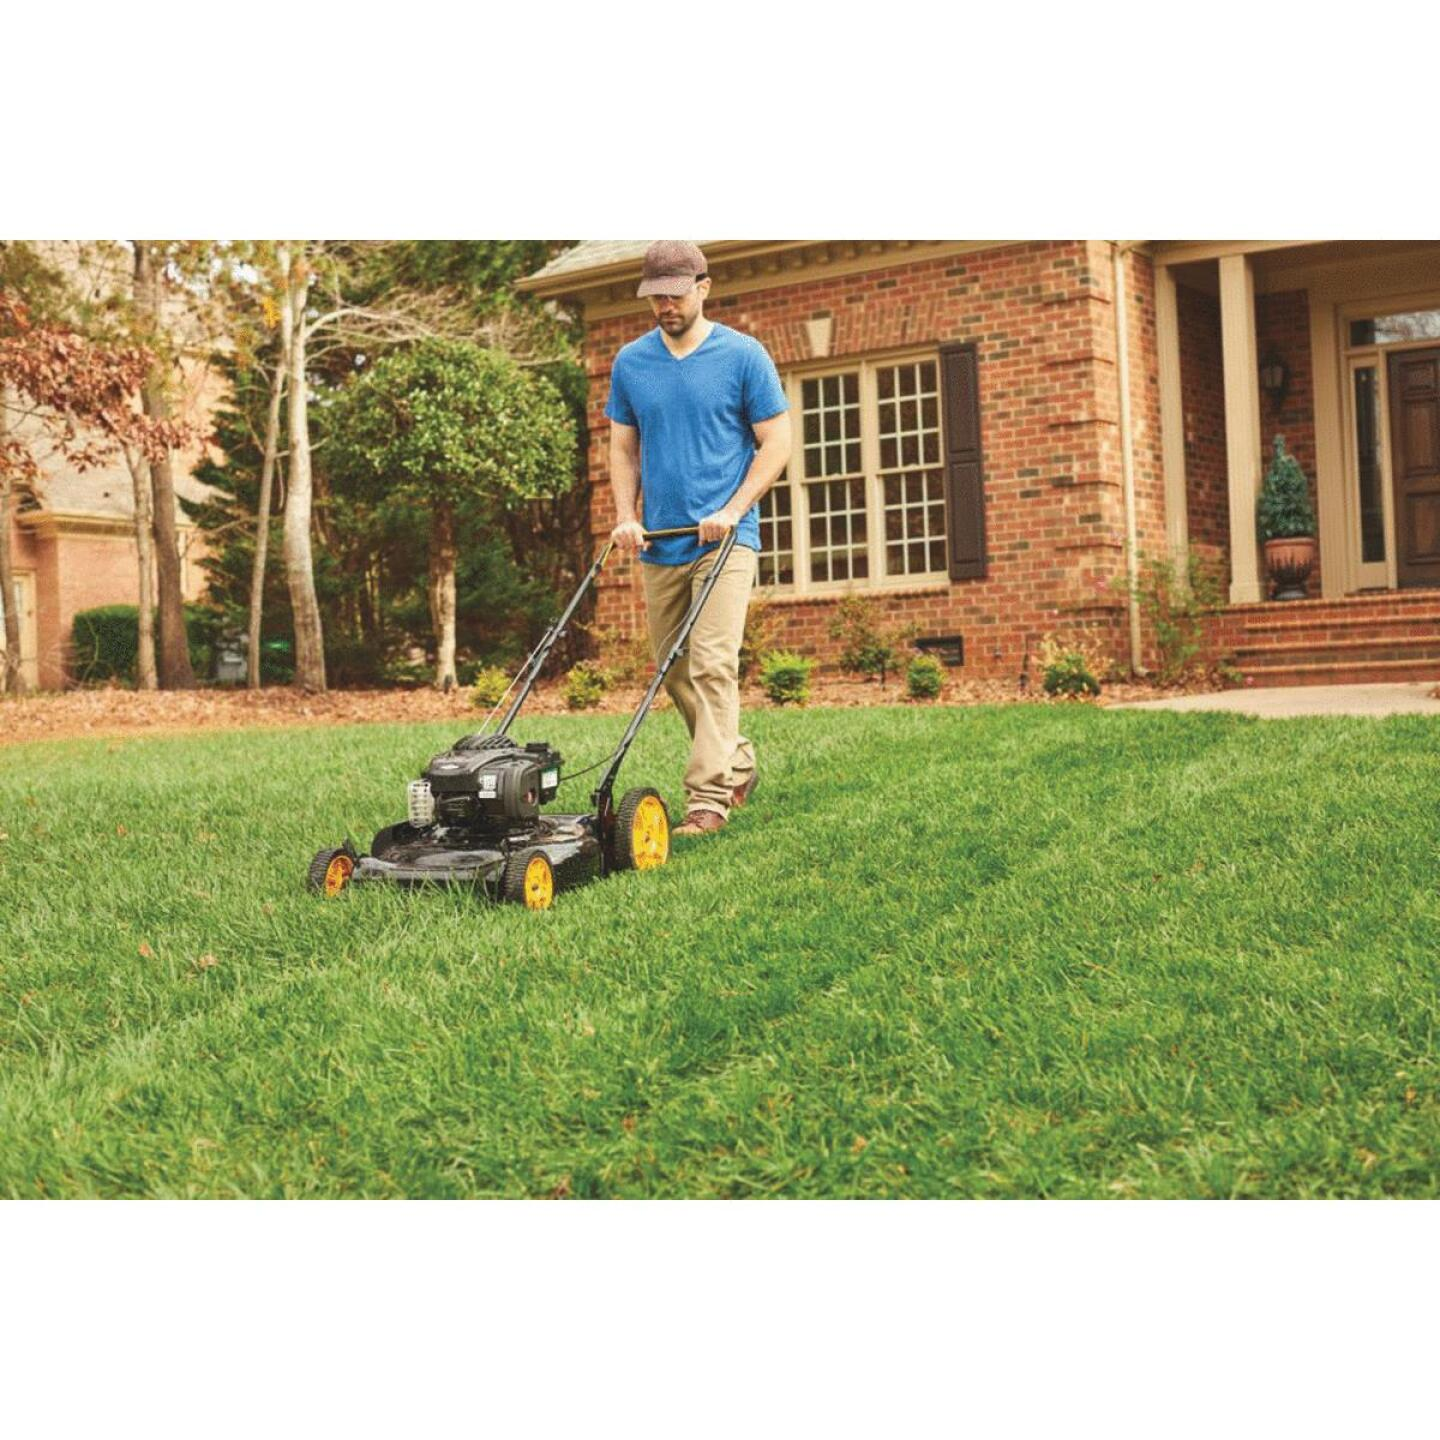 Poulan Pro 21 In. 140cc OHV Briggs & Stratton 2-In-1 Push Gas Lawn Mower Image 2